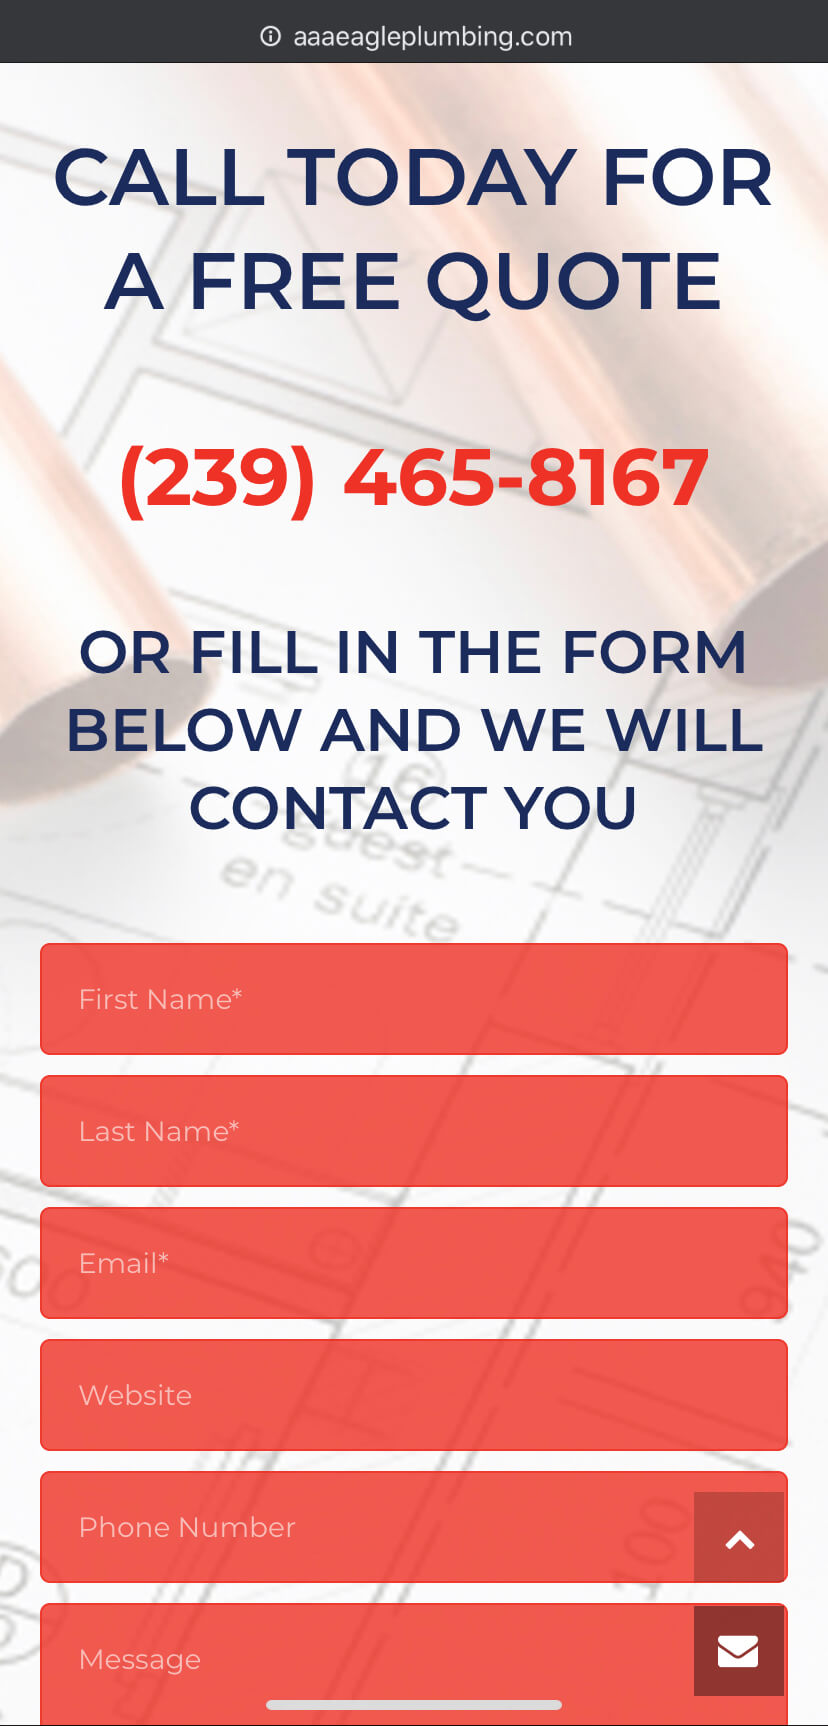 aaa eagle plumbing quote page mobile